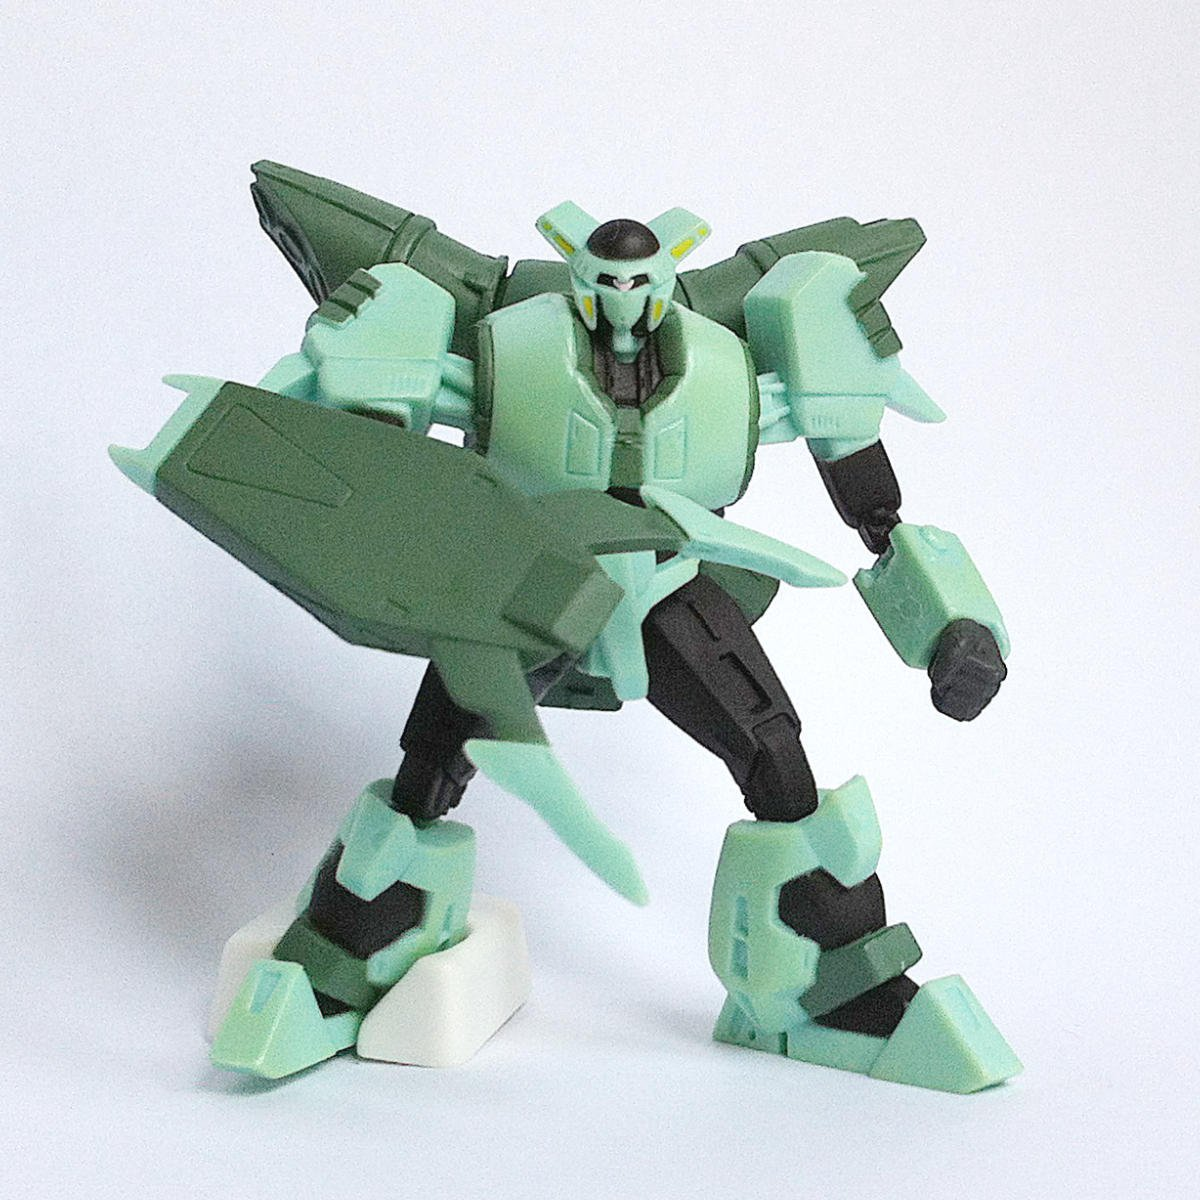 PMX-002 Bolinoak Sammahn from HG Gundam MS Selection 34 by Bandai